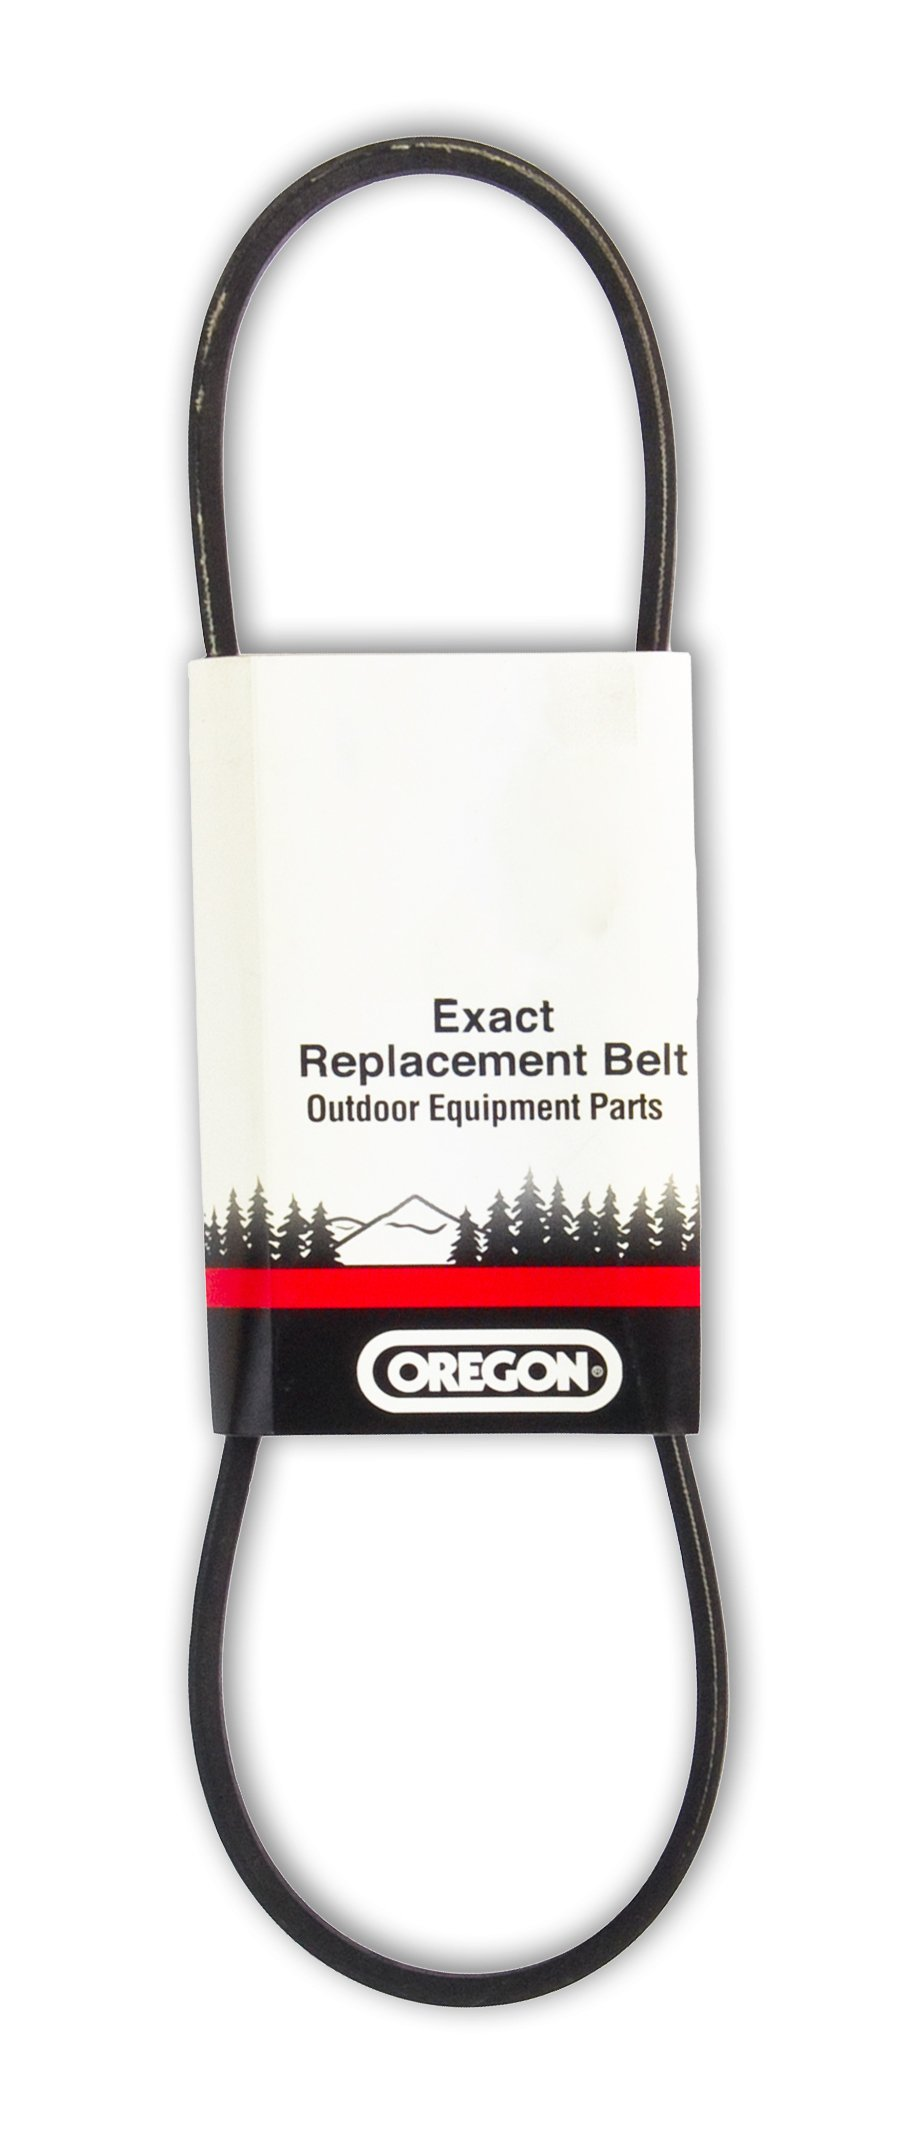 Oregon 75-939 Replacement Belt for Toro 958-6151, 5RIB x 33-7/8-inch